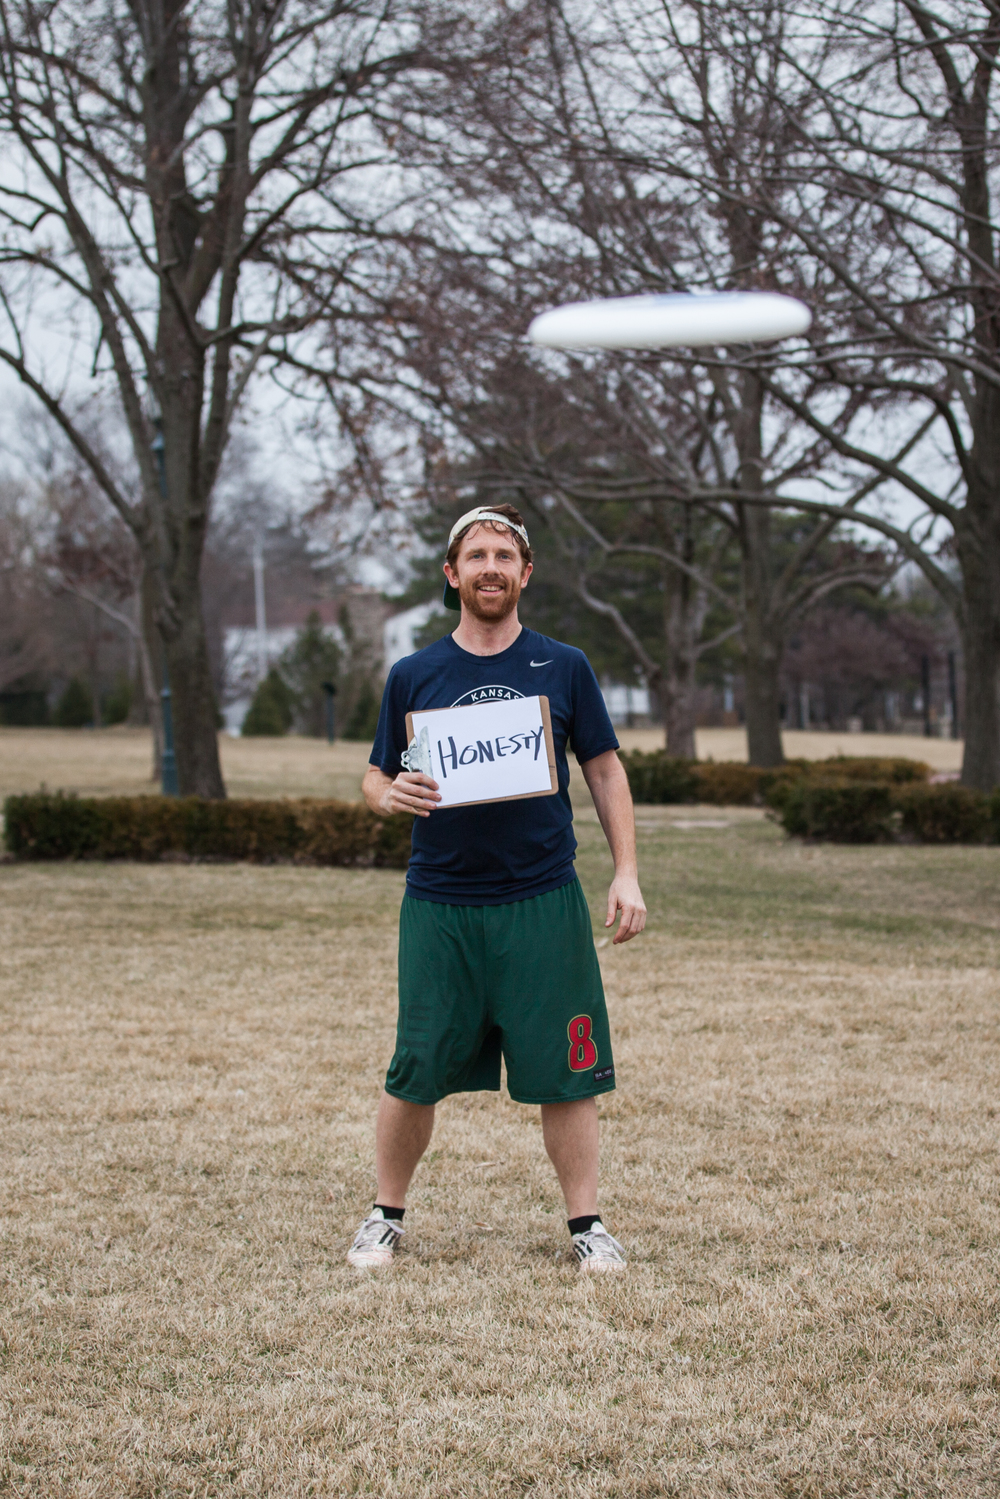 Man holding a sign saying honesty with a frisbee flying at him.